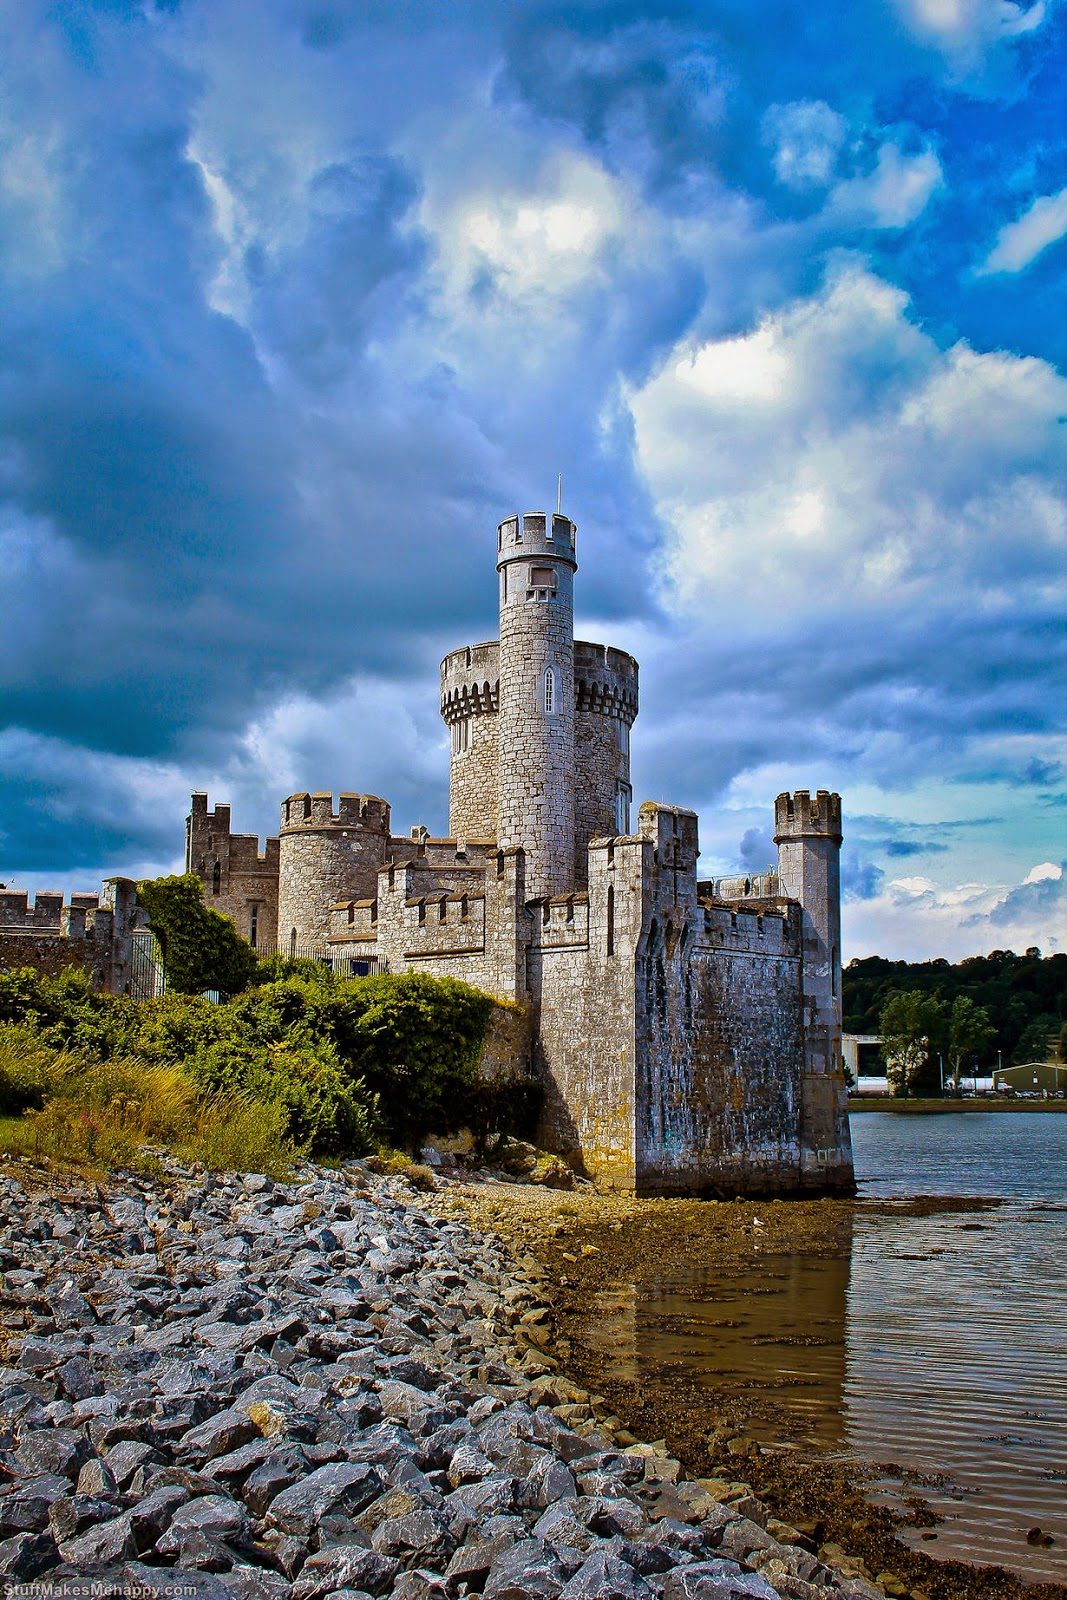 Blackrock Castle - Photo by John Hughes